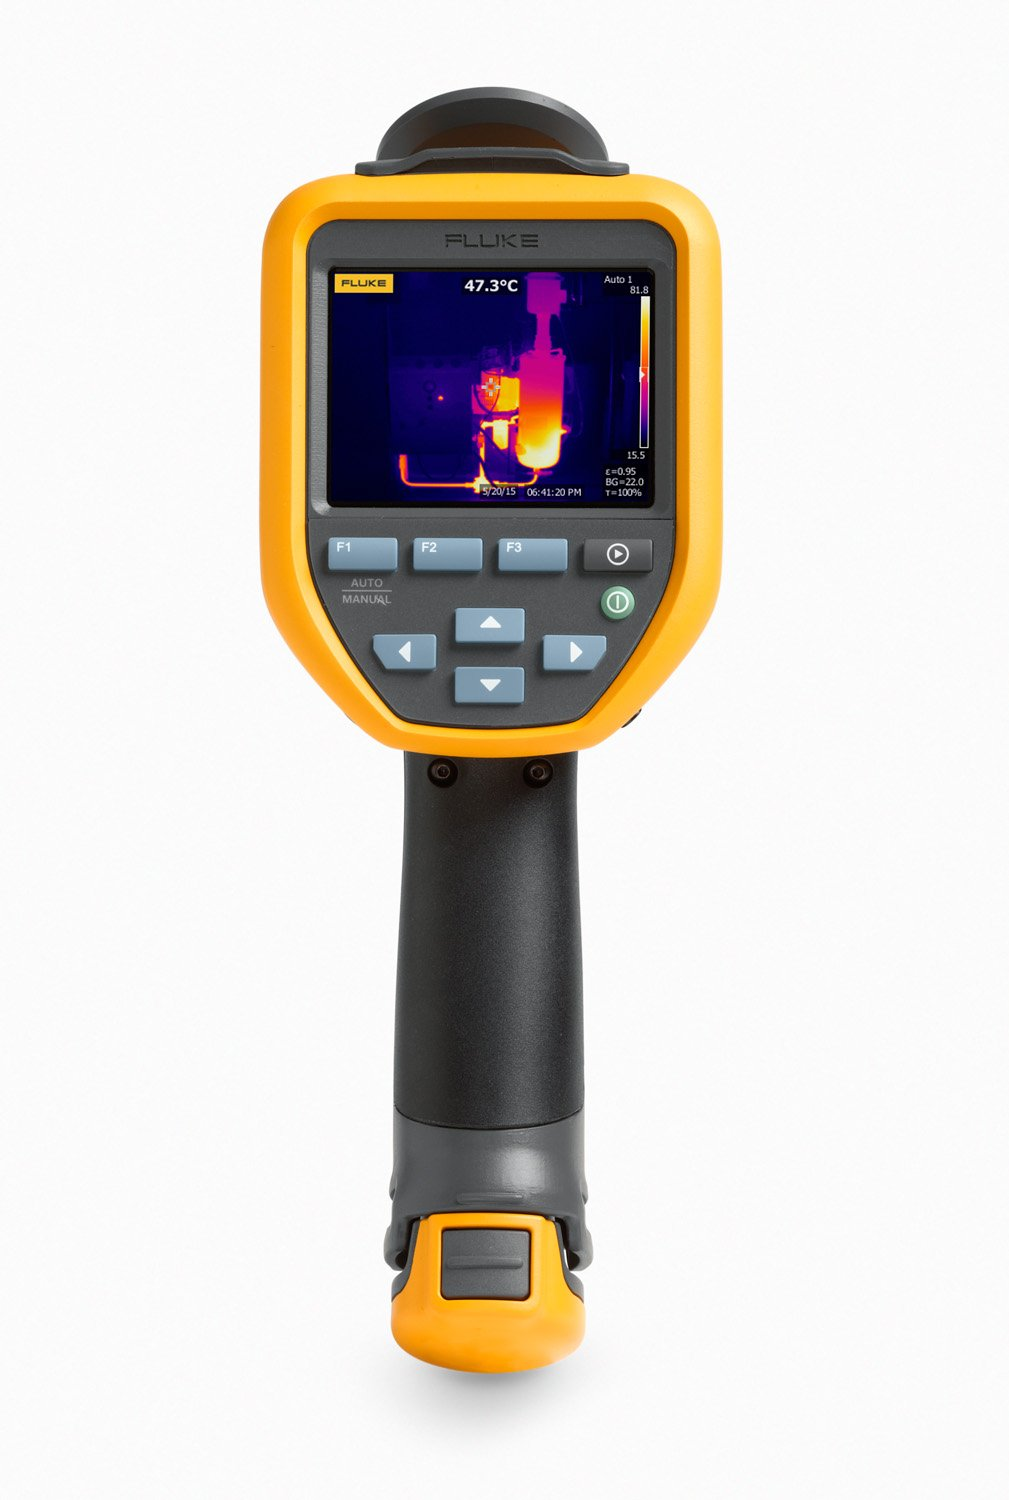 Fluke FLK-TIS65 30HZ Thermal Infrared Camera with IR-Fusion, Video Recording, Picture-in-Picture, Voice Annotations, Color Alarms, 3.5'' LCD, Manual Focus, 260x195 Resolution